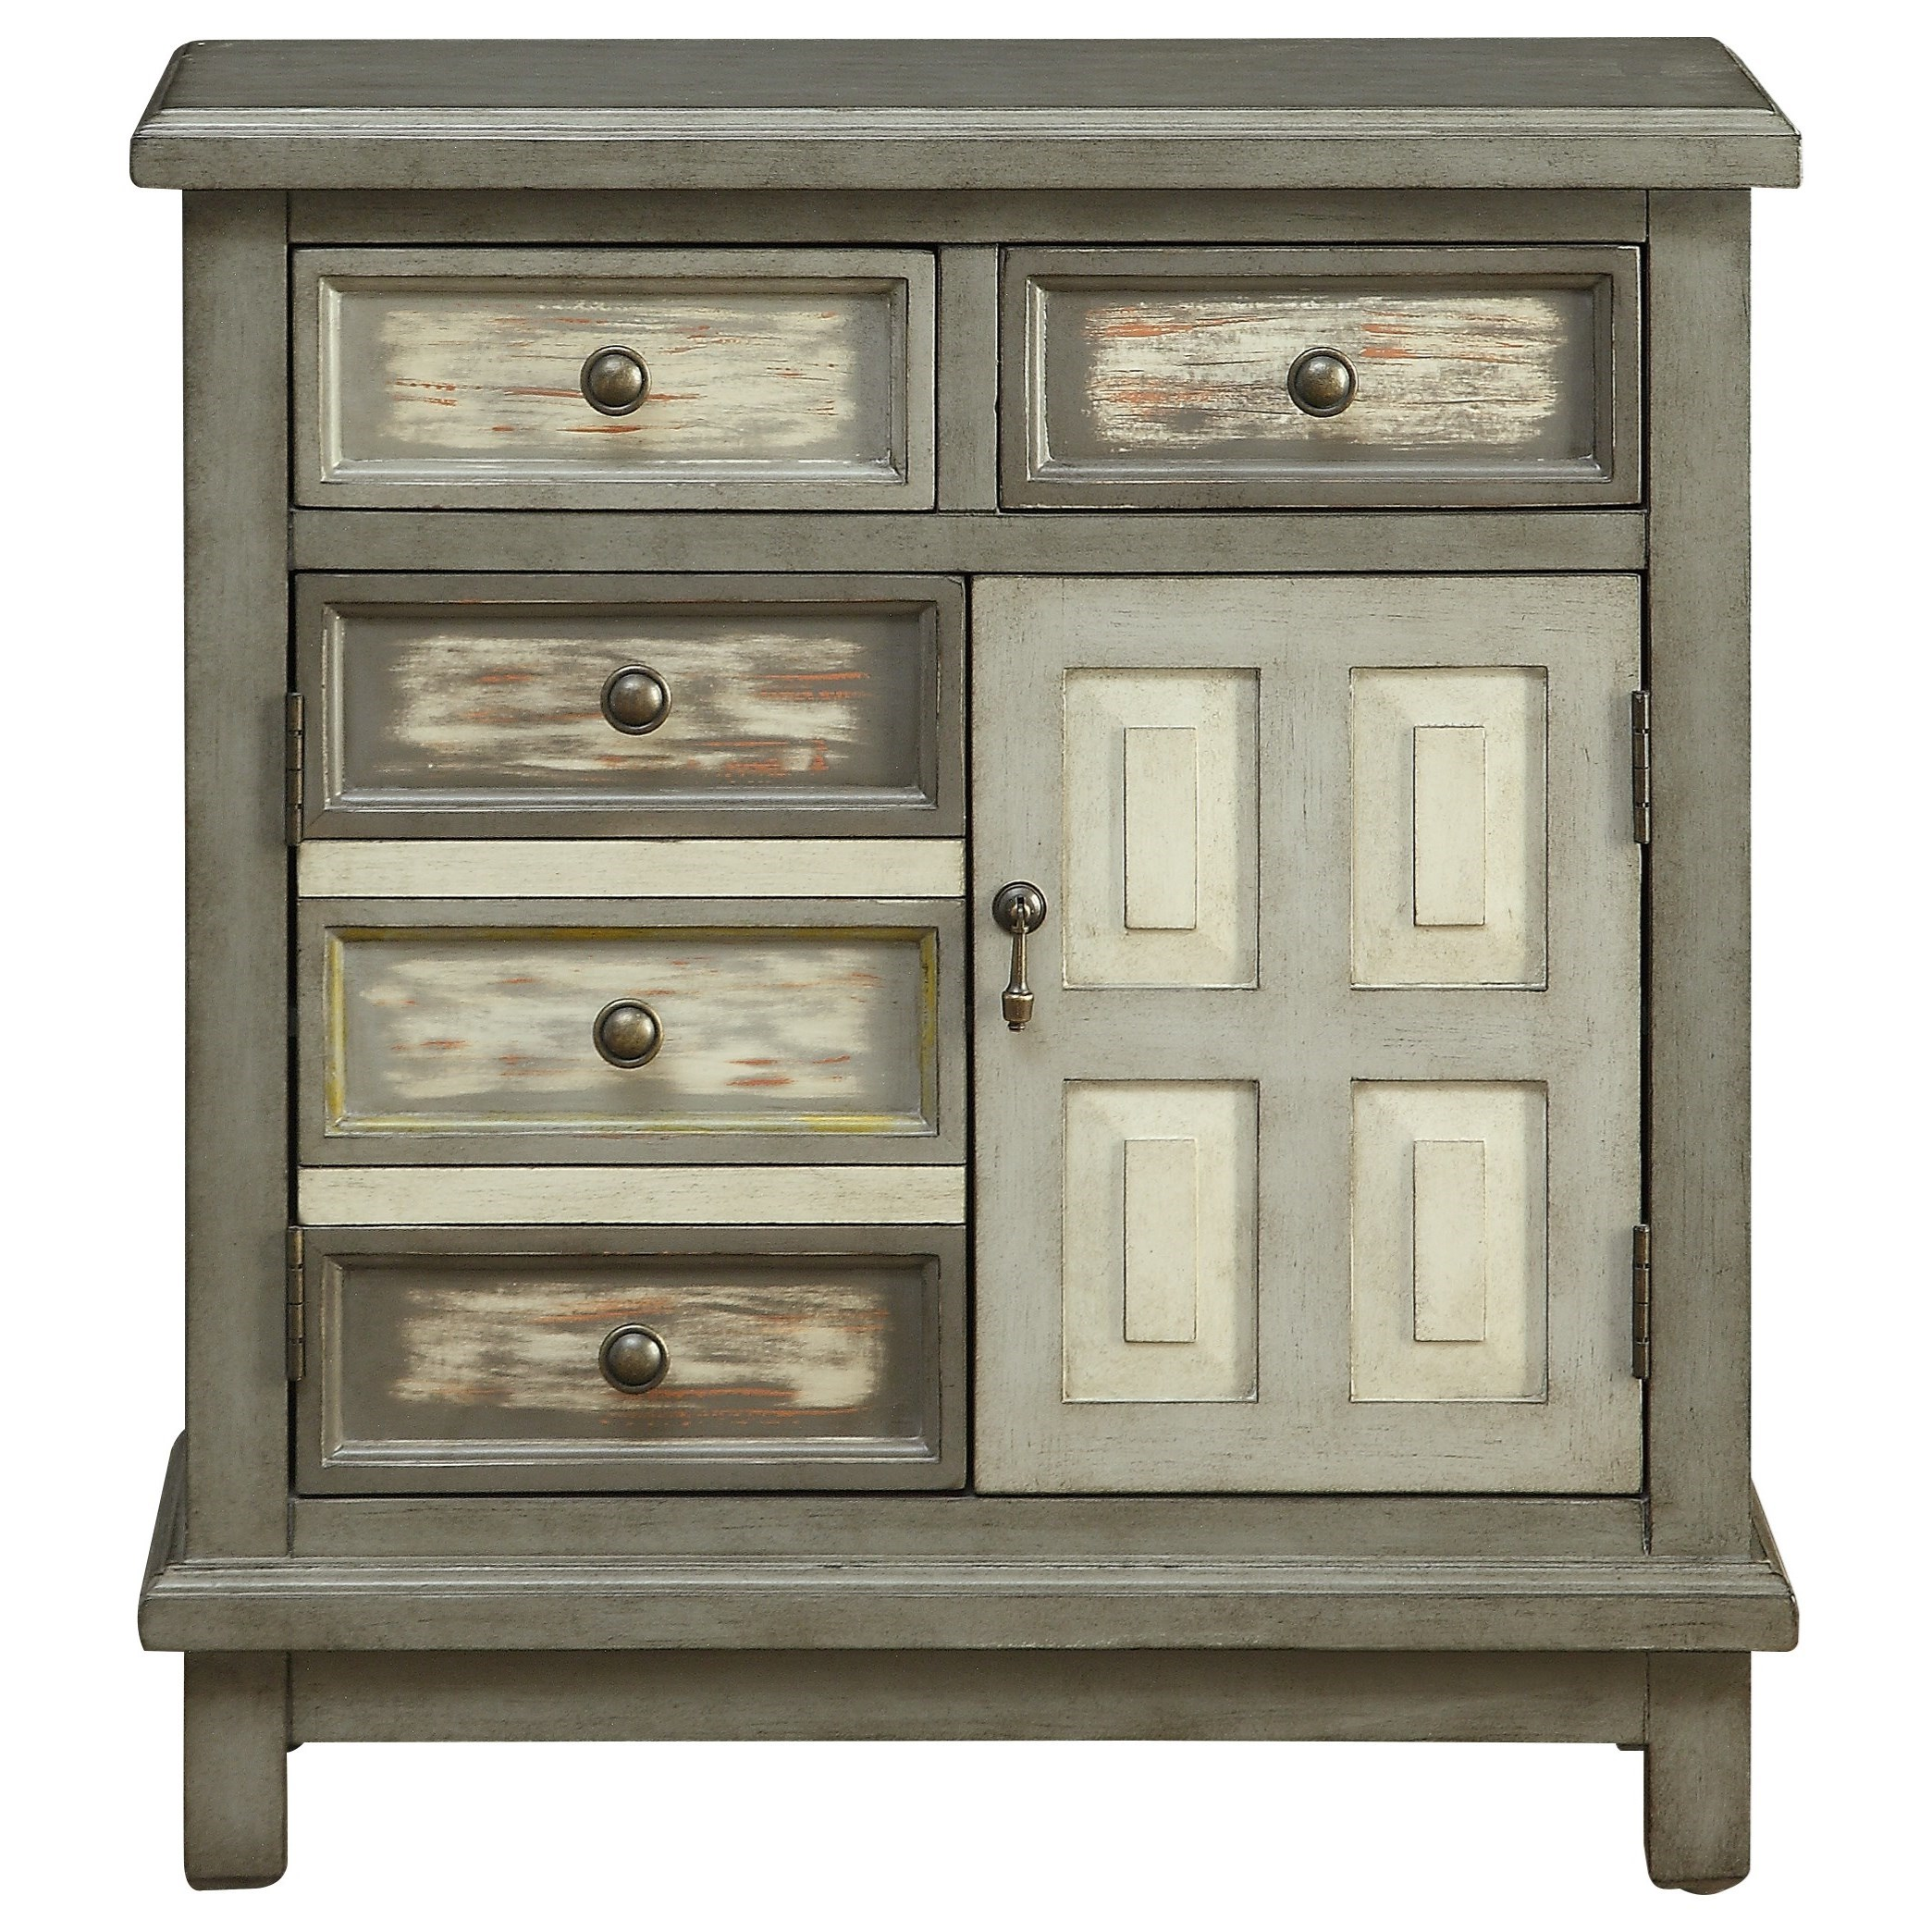 C2C Accents Two Drawer Two Door Cabinet by C2C at Walker's Furniture